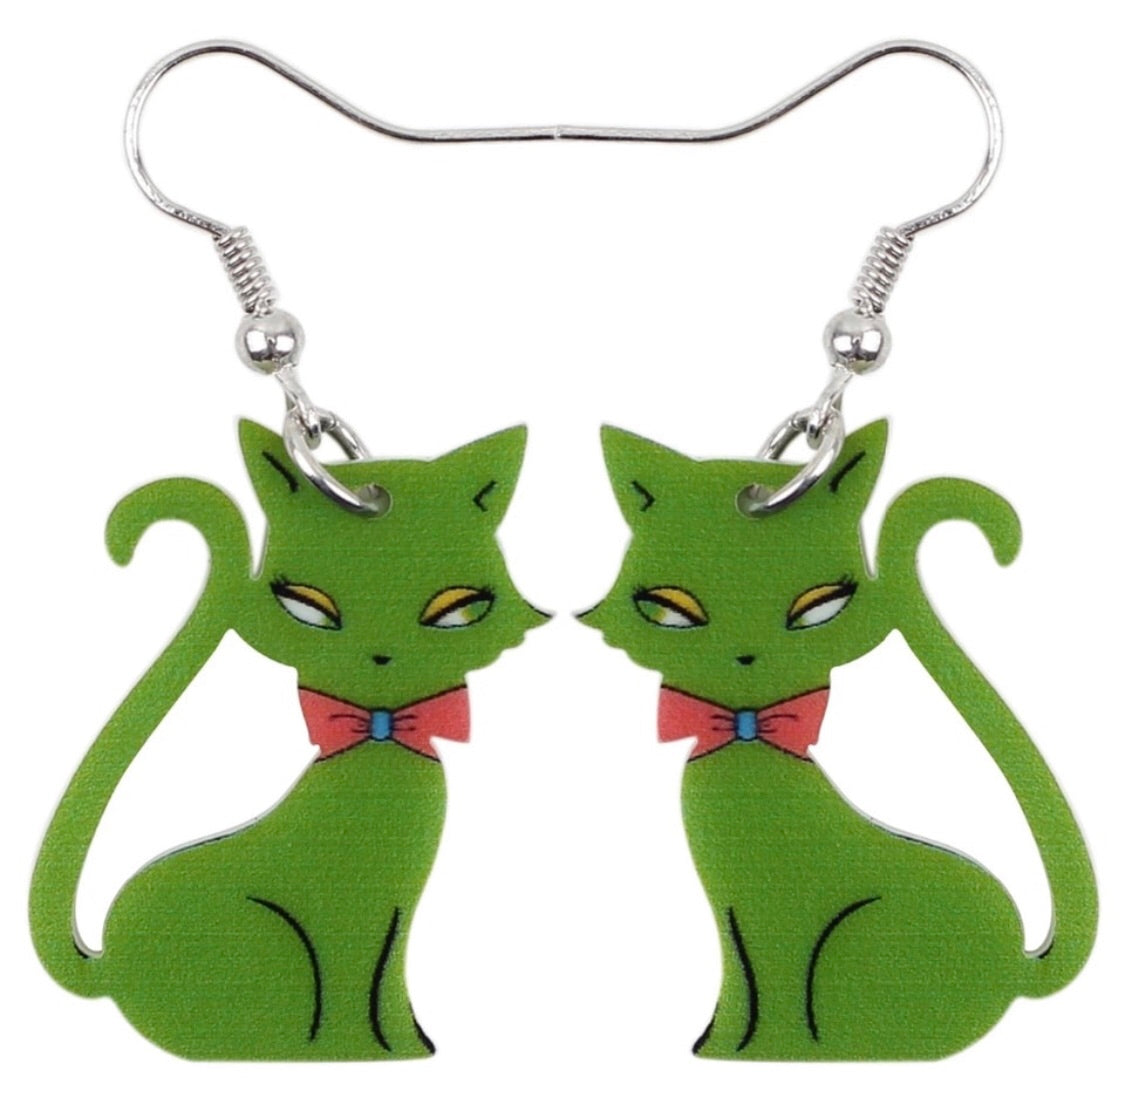 Midcentury style kitty earrings green